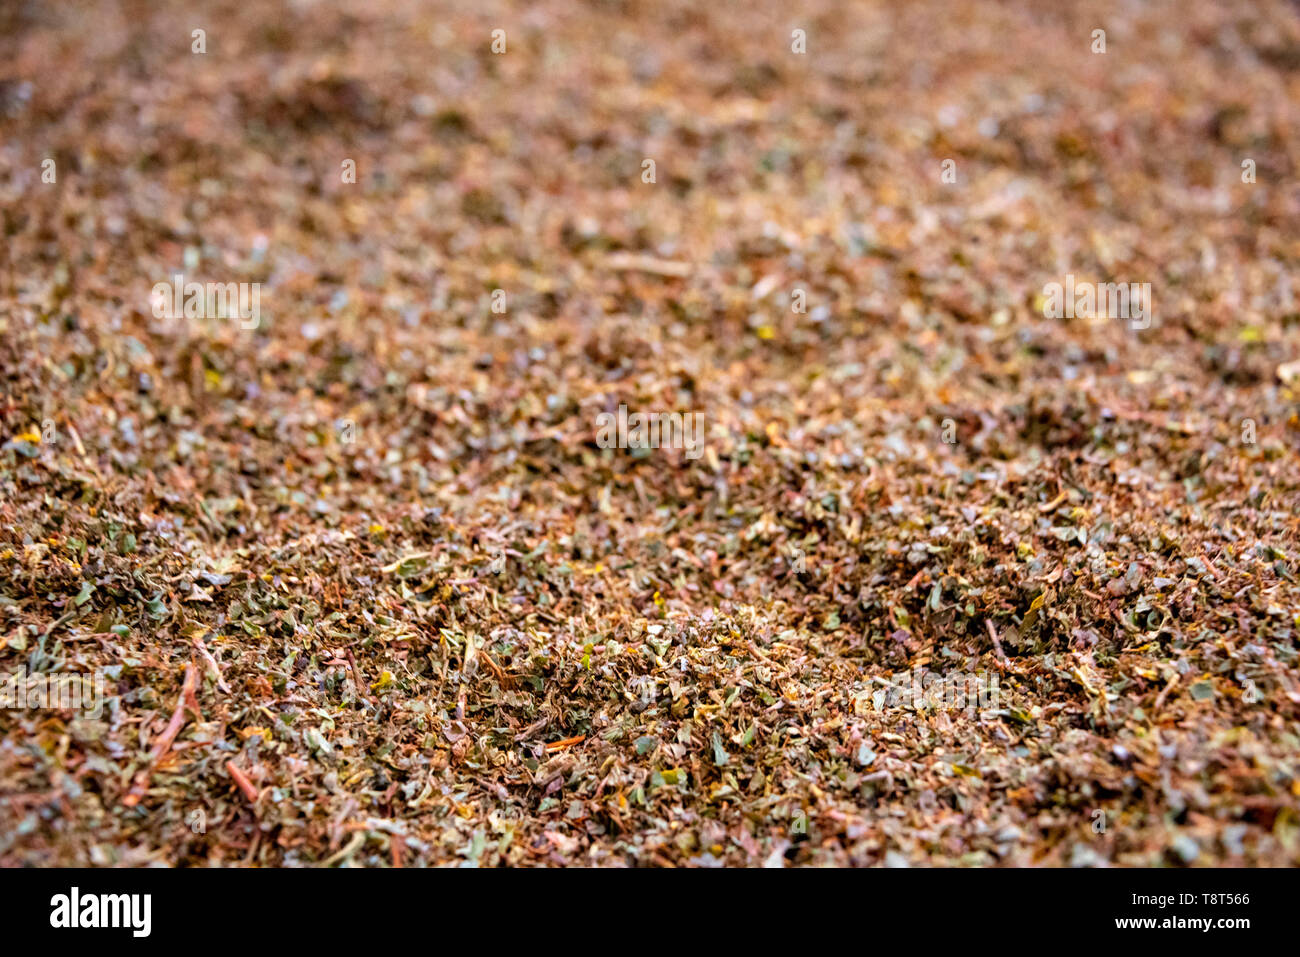 Horizontal close up of loose tea at the end of the production line at a tea factory in Munnar, India. - Stock Image